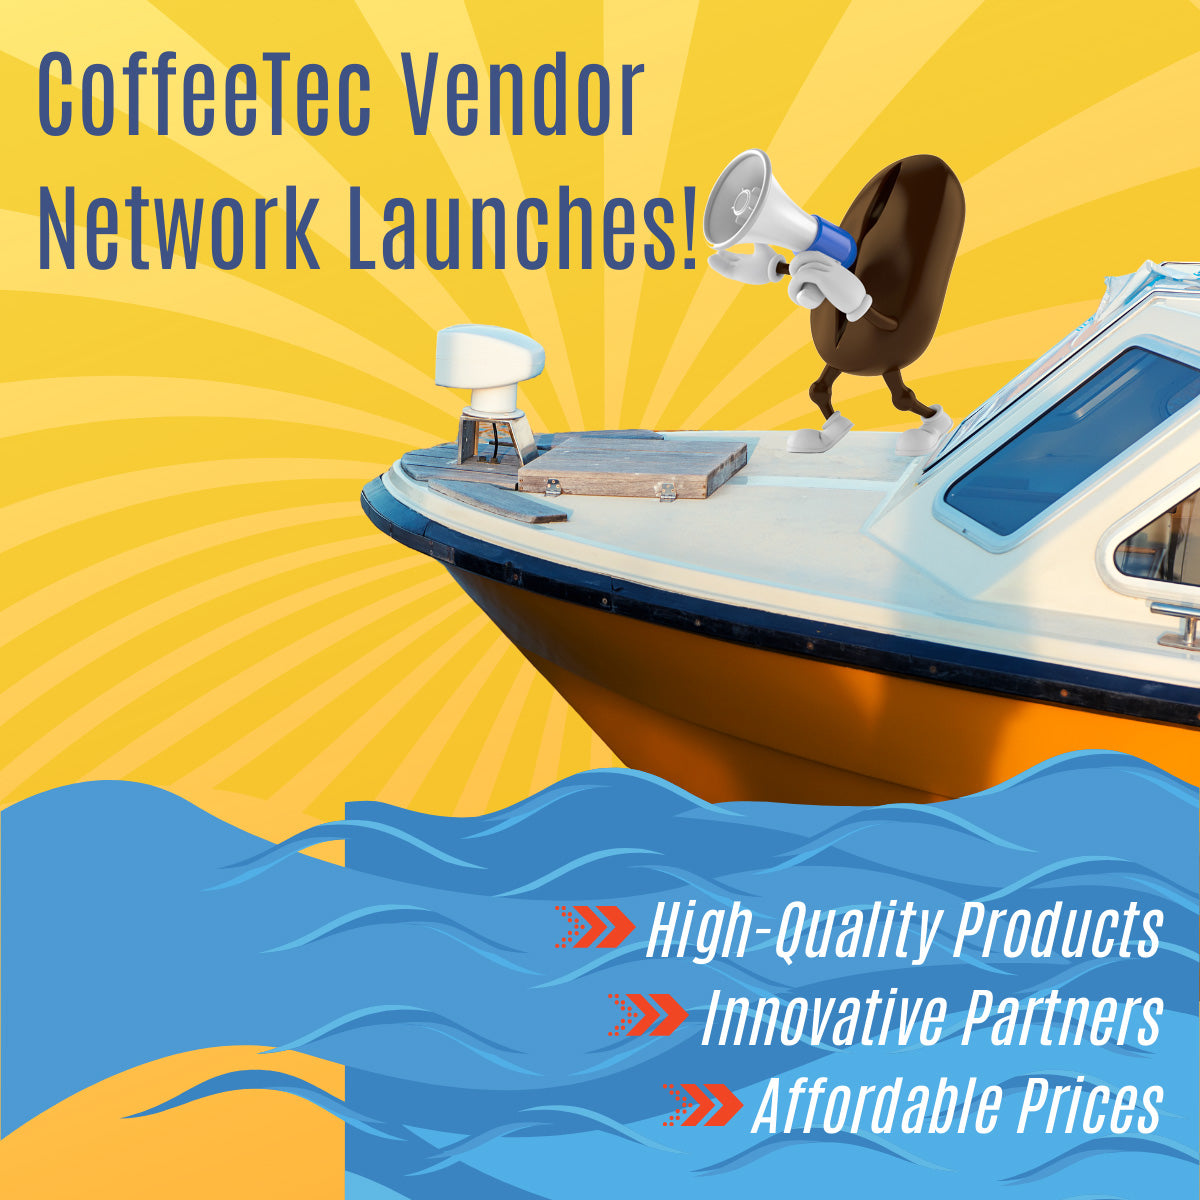 CoffeeTec Vendor Network Launches